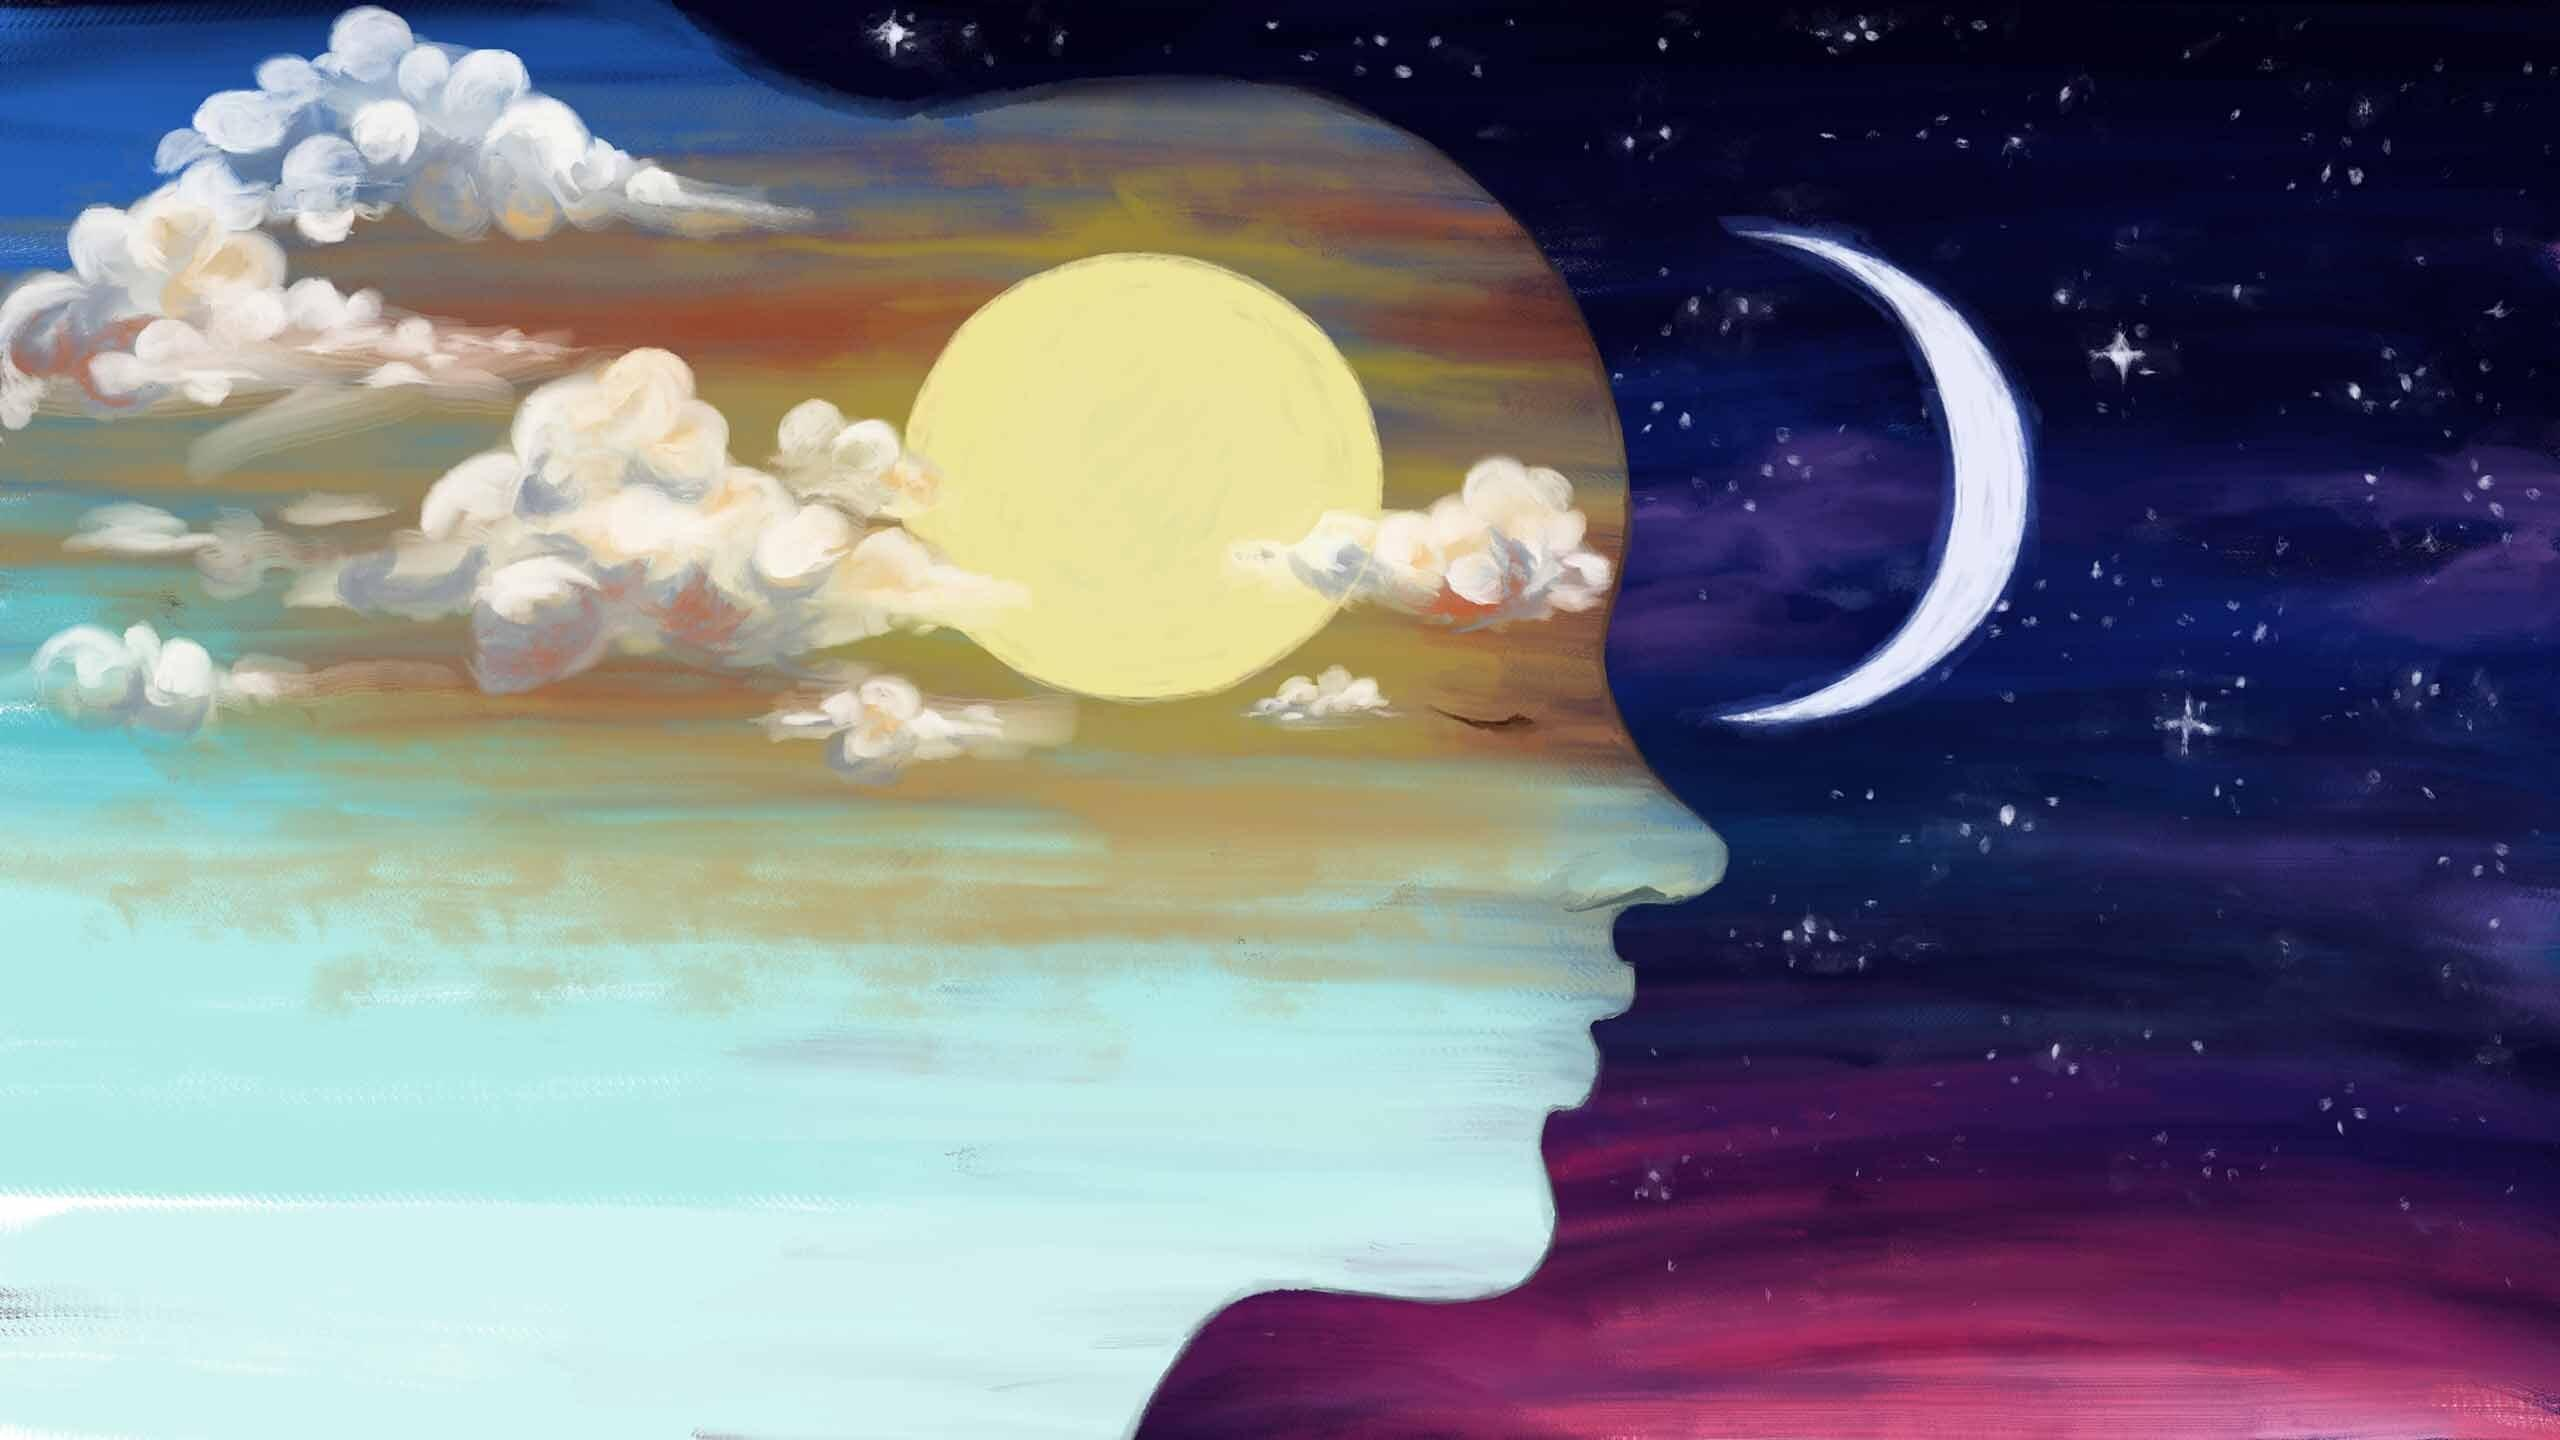 The silhouette of a persons face with a sunny sky within and a night sky outside